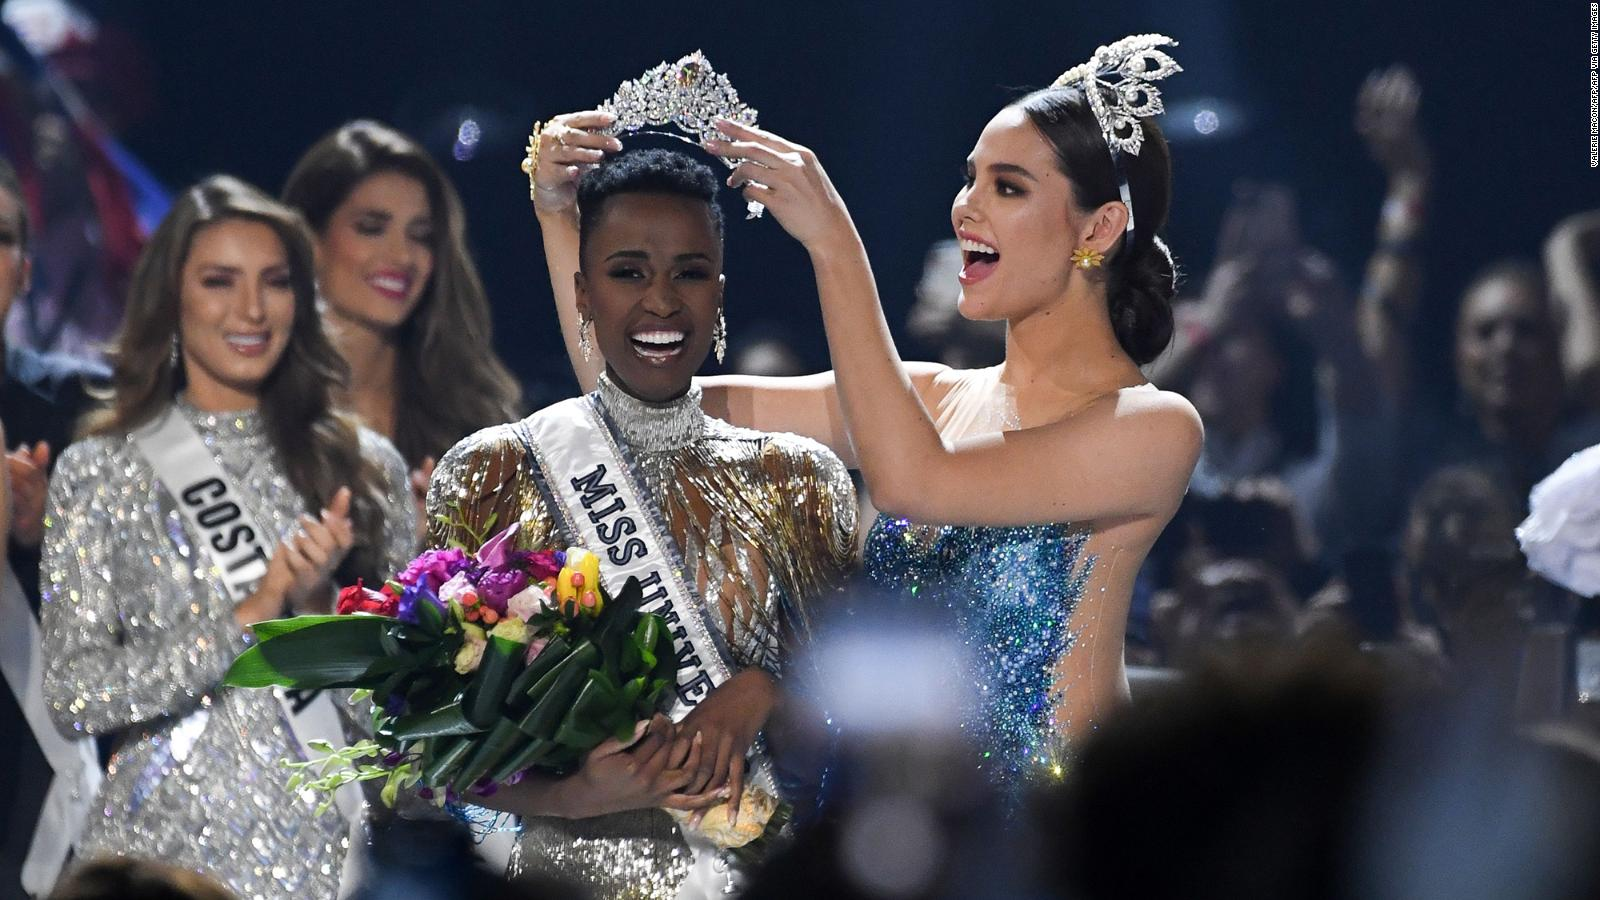 Betting on miss universe 2021 videos how much does sports betting make a year